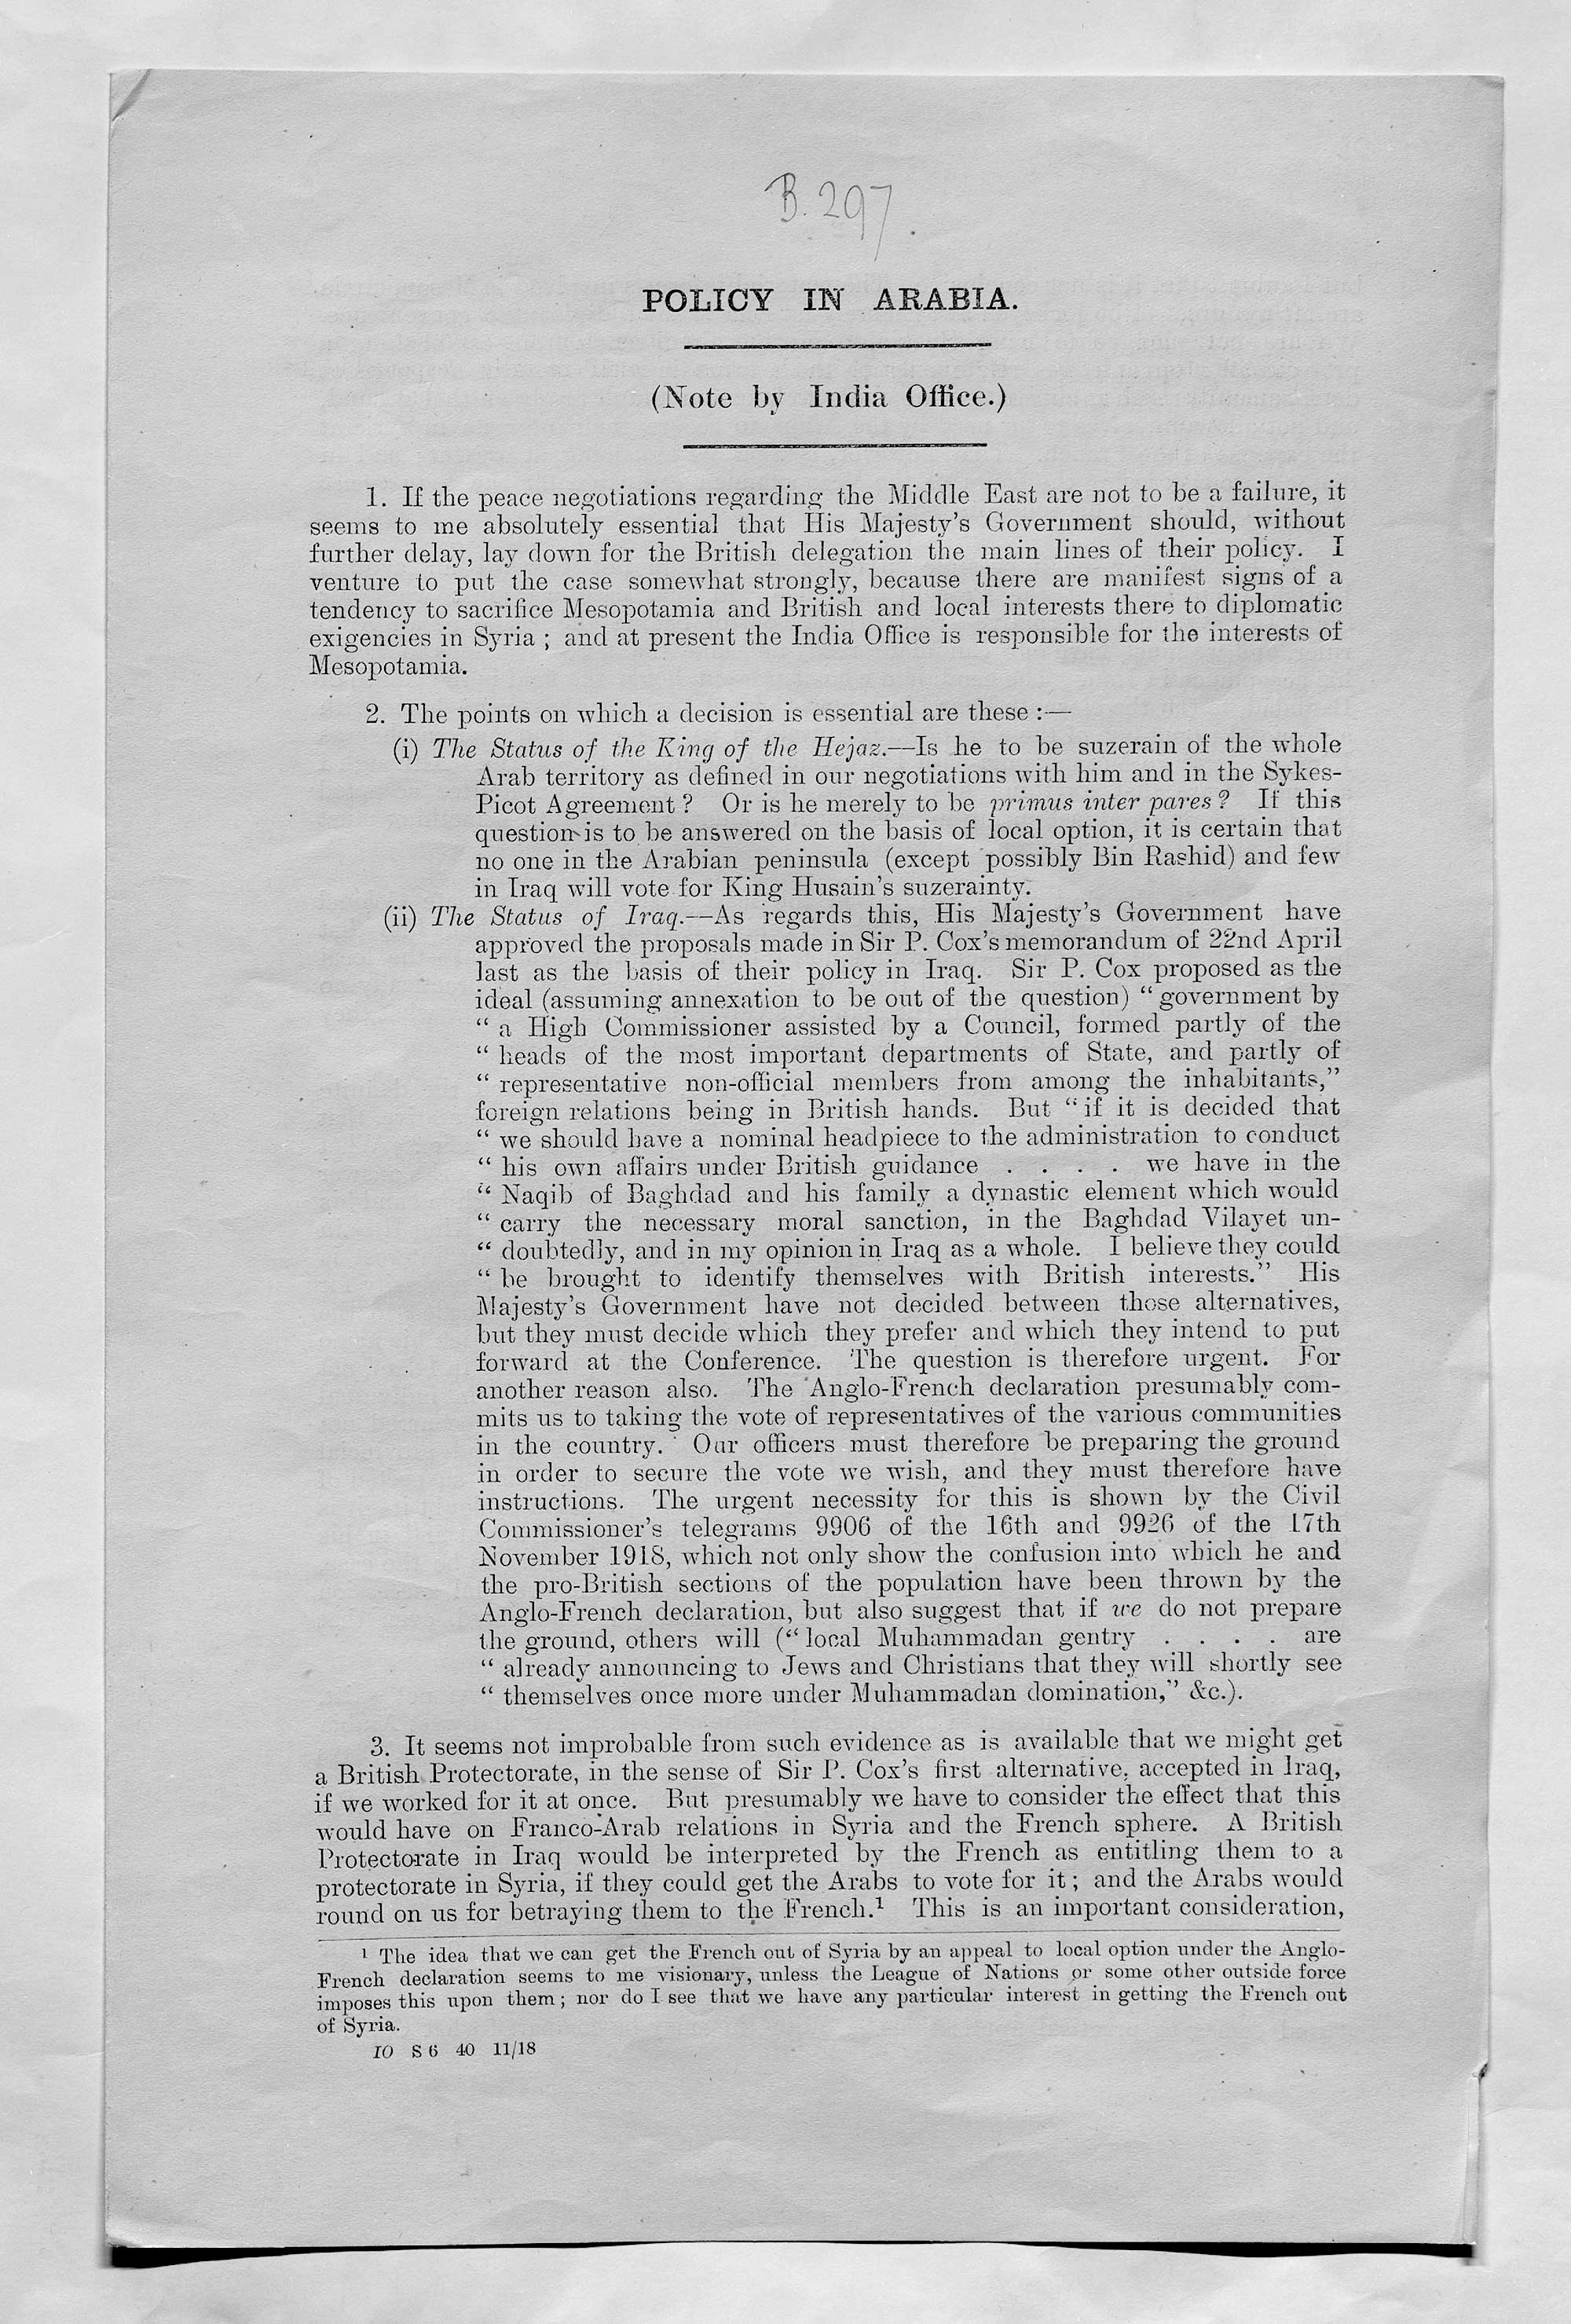 Note by senior India Office official, Sir Frederic Arthur Hirtzel, on the policy of the British Government regarding Syria and Mesopotamia (modern-day Iraq). 20 November 1918.